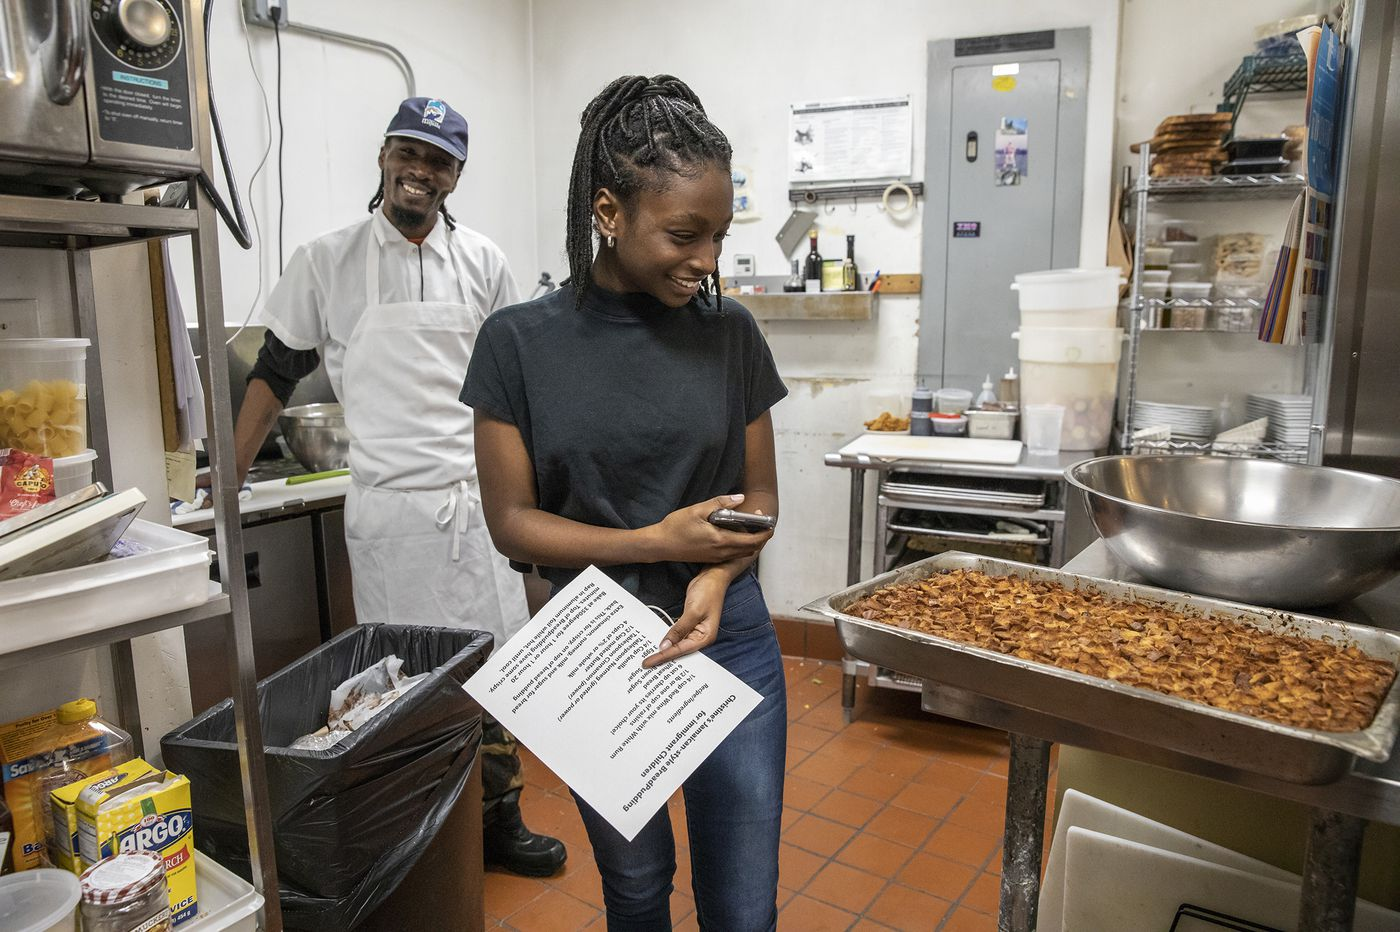 One piece of bread pudding at a time, a famed South Philly restaurant supports immigrants around the world | Helen Ubiñas